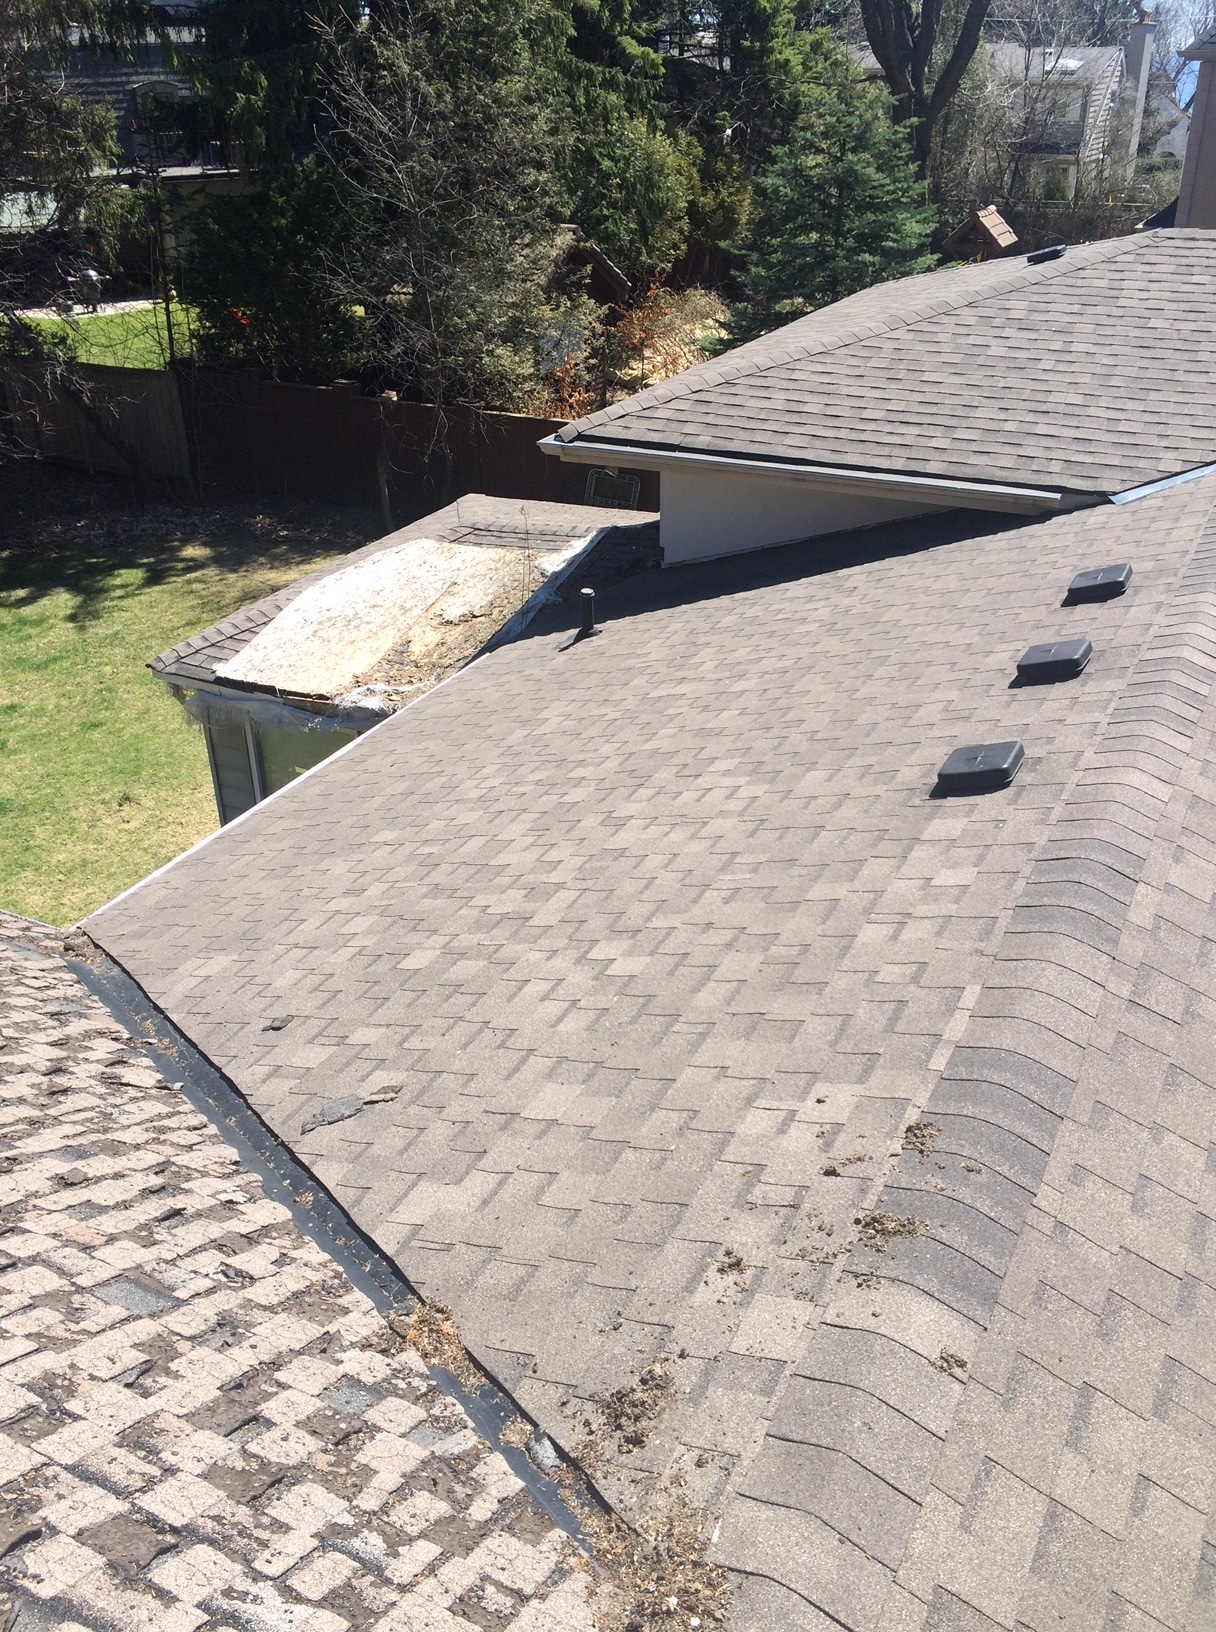 Deteriorated asphalt shingles in Scarborough